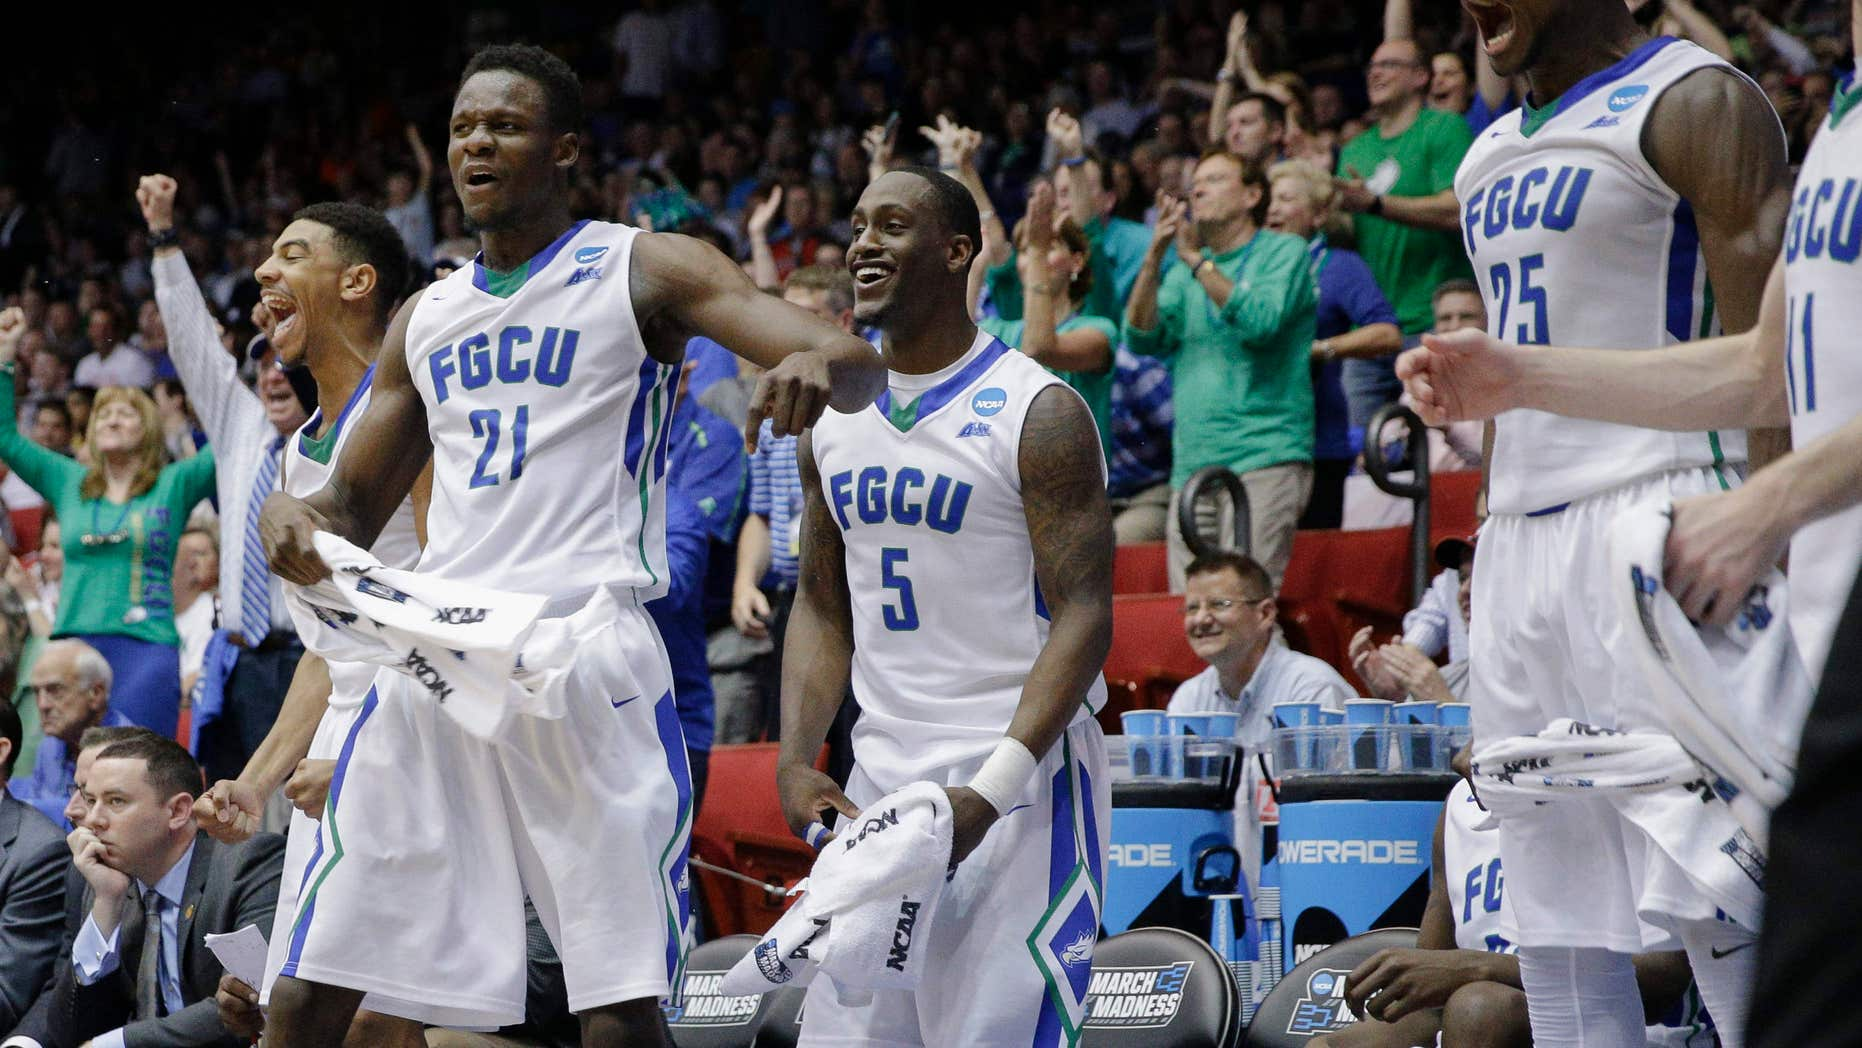 Florida Gulf Coast's Demetris Morant (21), Zach Johnson (5), and Marc Eddy Norelia (25) react after Brian Greene Jr., not pictured, dunks in the second half of a First Four game of the NCAA college basketball tournament against Fairleigh Dickinson, Tuesday, March 15, 2016, in Dayton, Ohio.